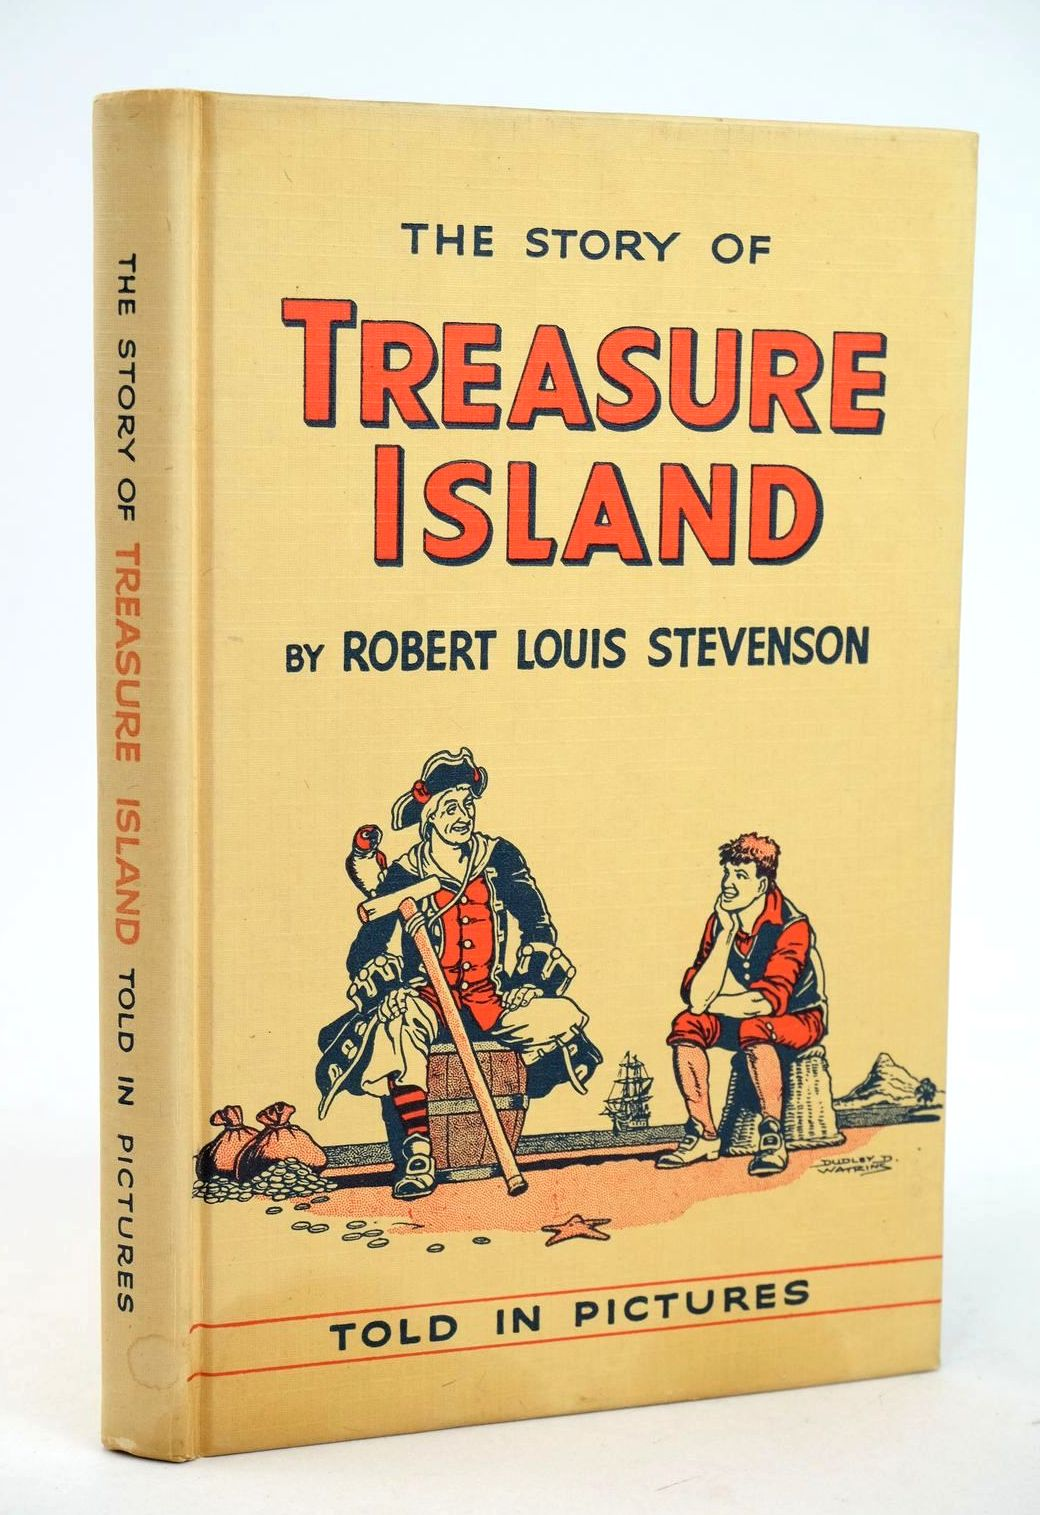 Photo of THE STORY OF TREASURE ISLAND TOLD IN PICTURES written by Stevenson, Robert Louis illustrated by Watkins, Dudley D. published by D.C. Thomson & Co Ltd., John Leng & Co. Ltd. (STOCK CODE: 1318970)  for sale by Stella & Rose's Books